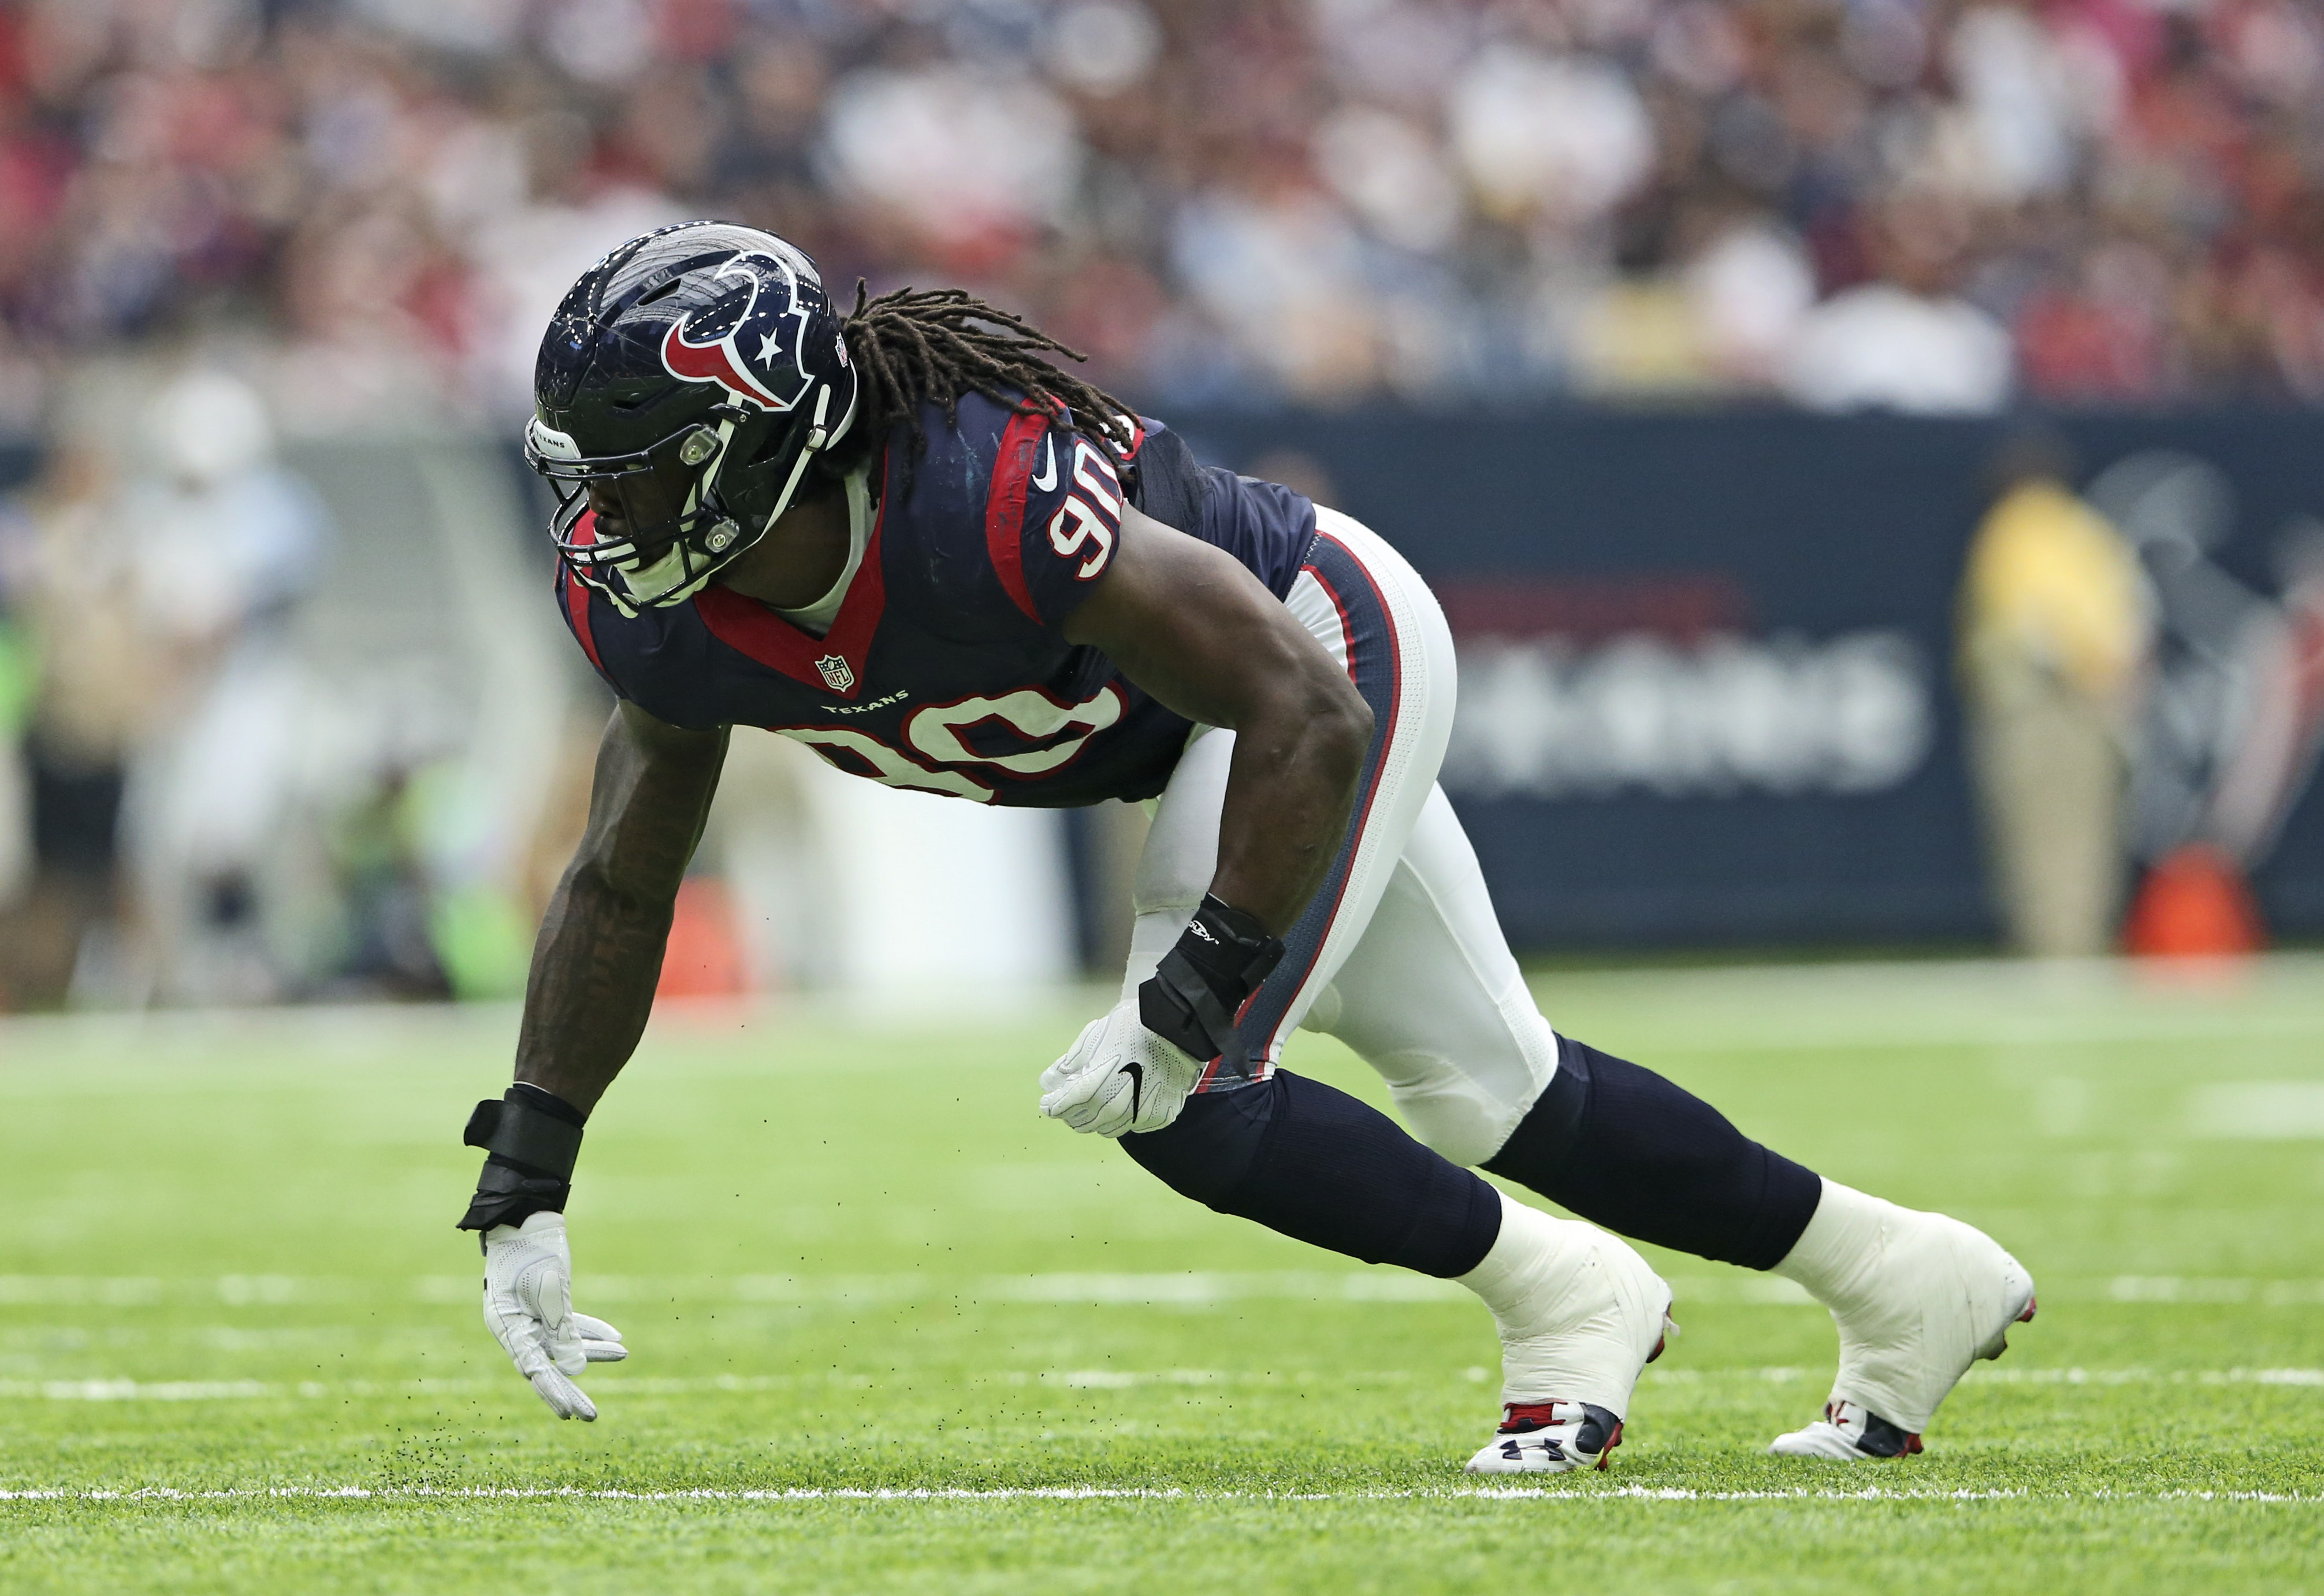 9595822-nfl-tennessee-titans-at-houston-texans